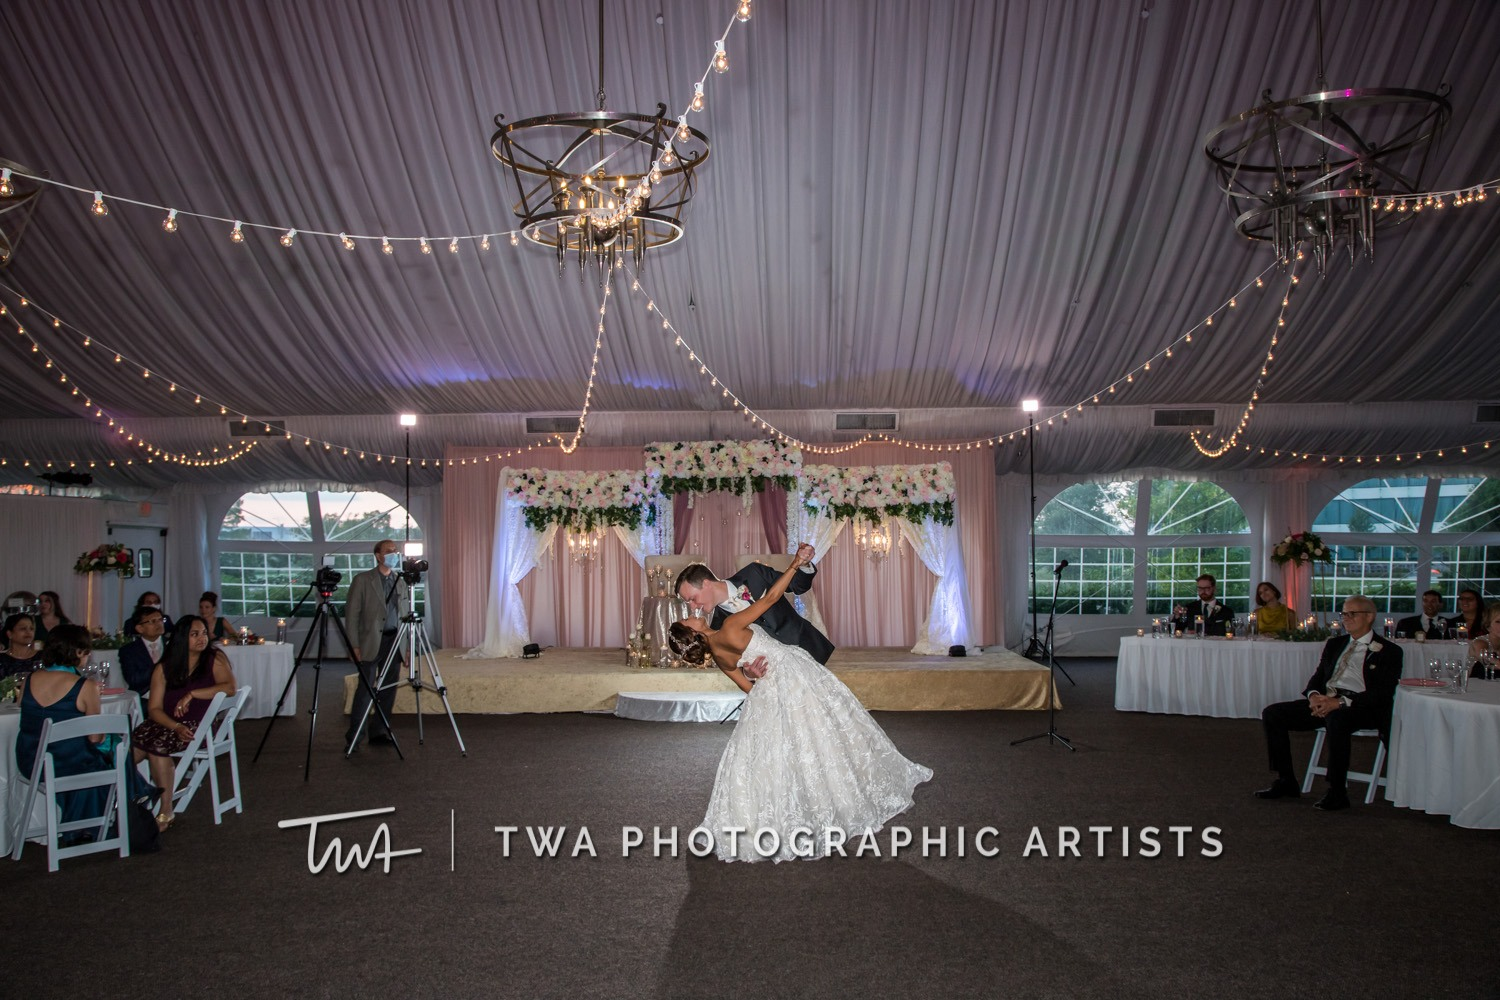 Chicago-Wedding-Photographer-TWA-Photographic-Artists-Shah_Billings_WM_TL-1285